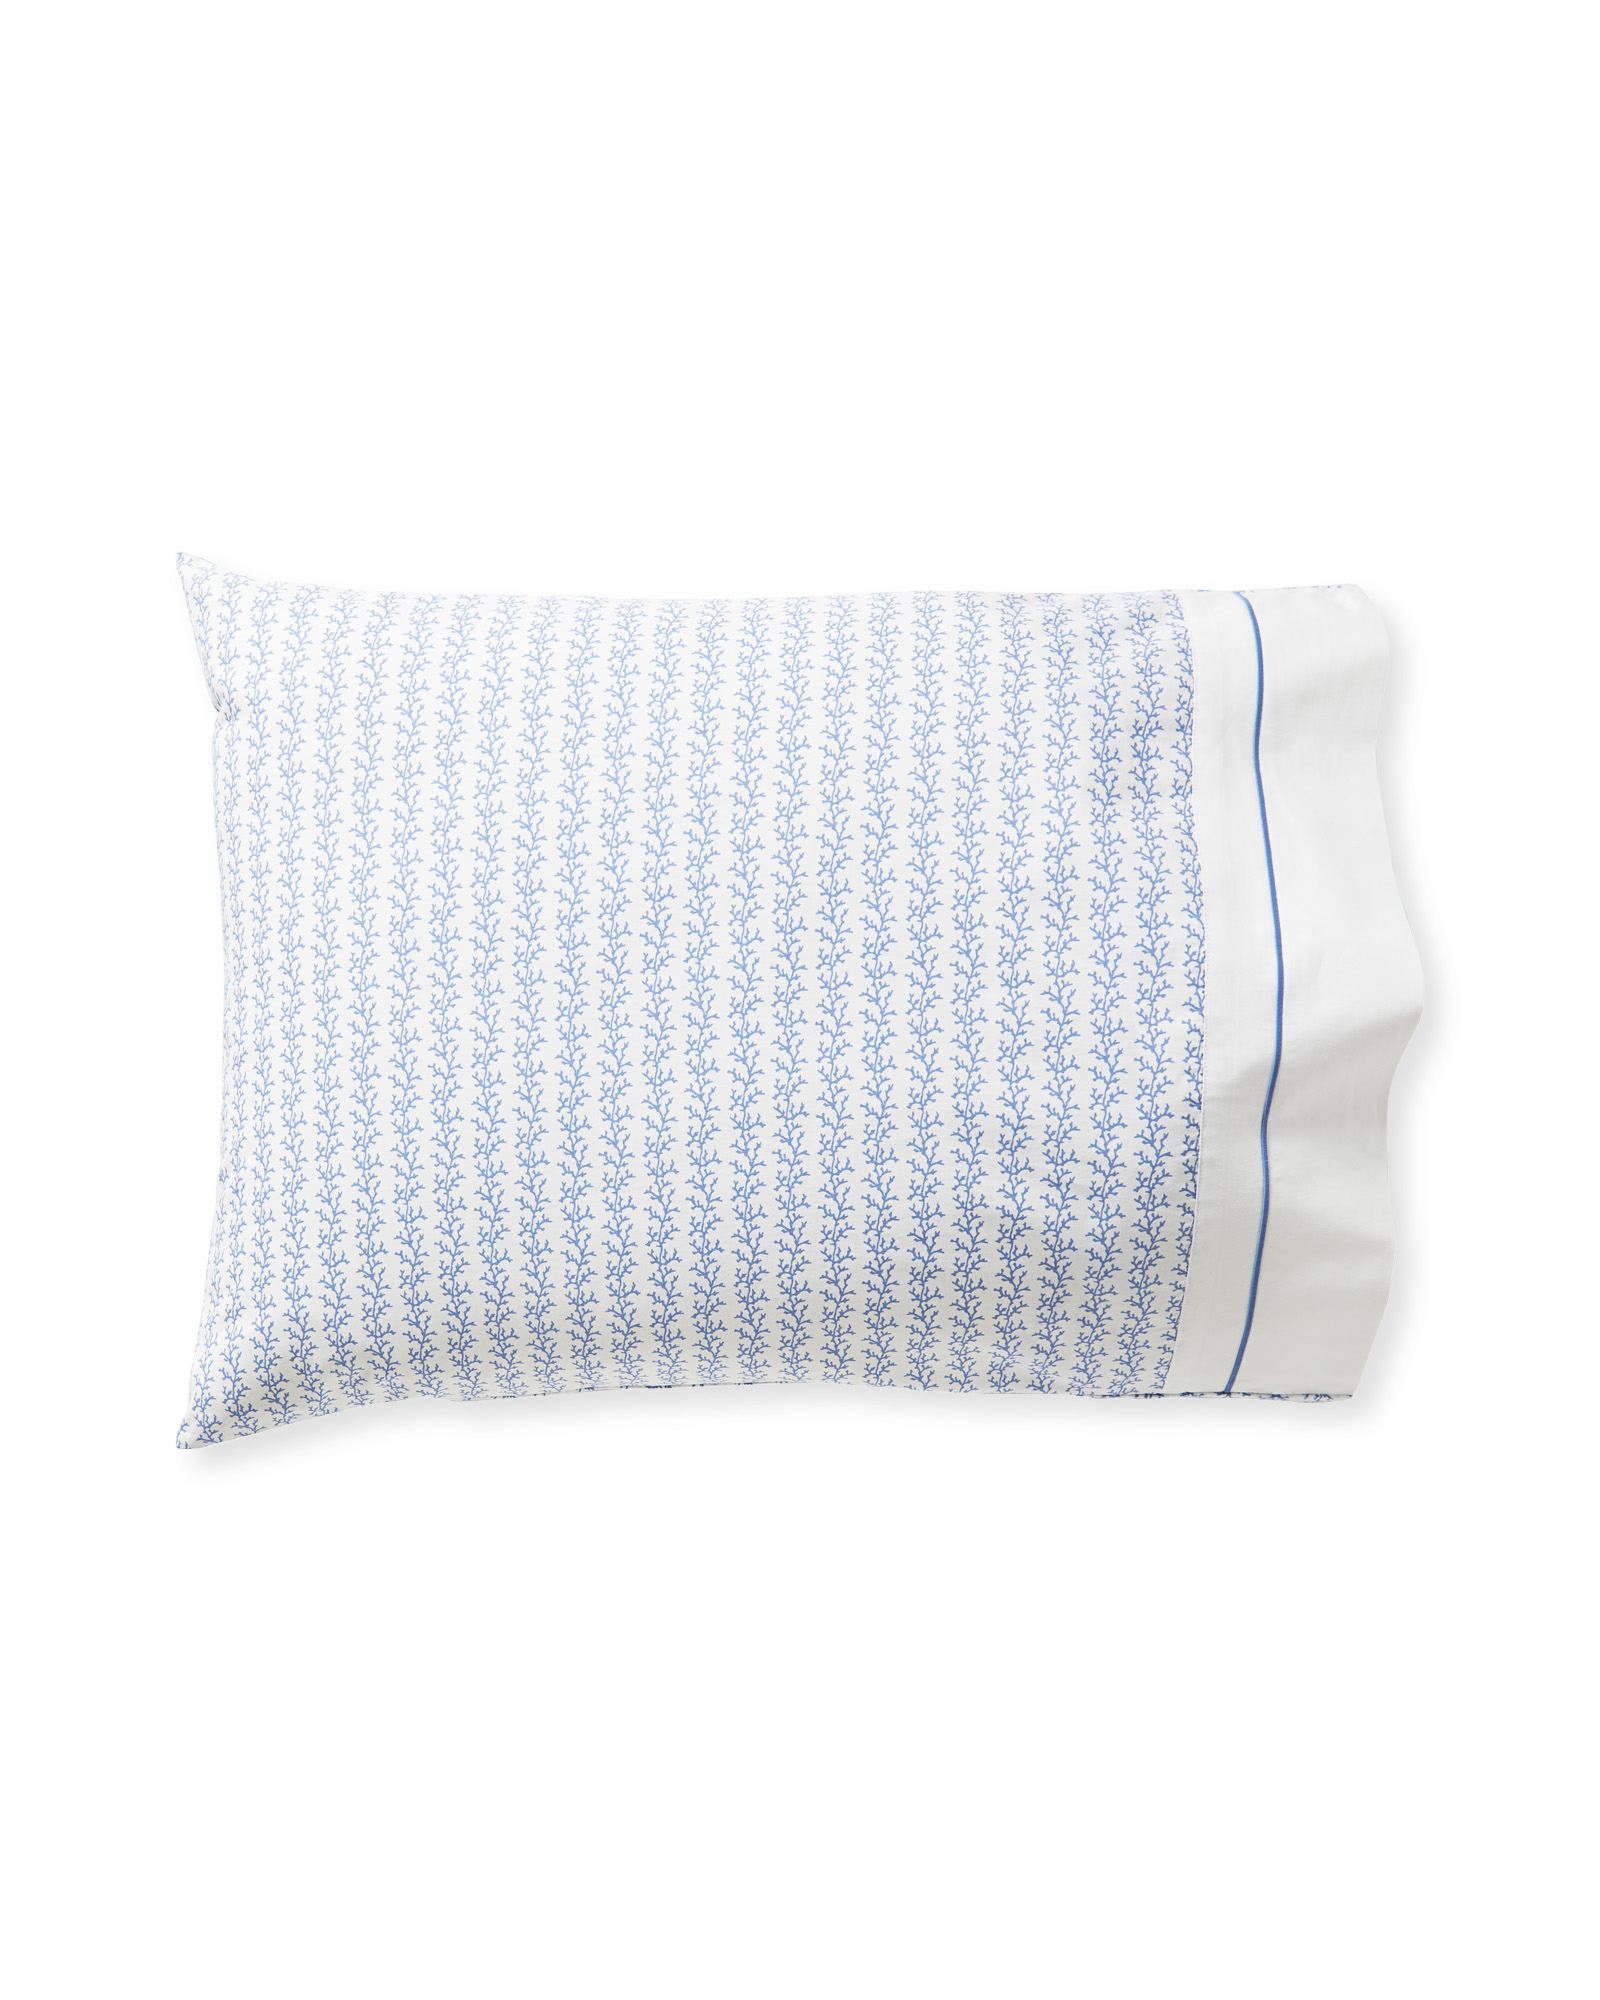 Beach Bay Pillowcases (Set of 2),